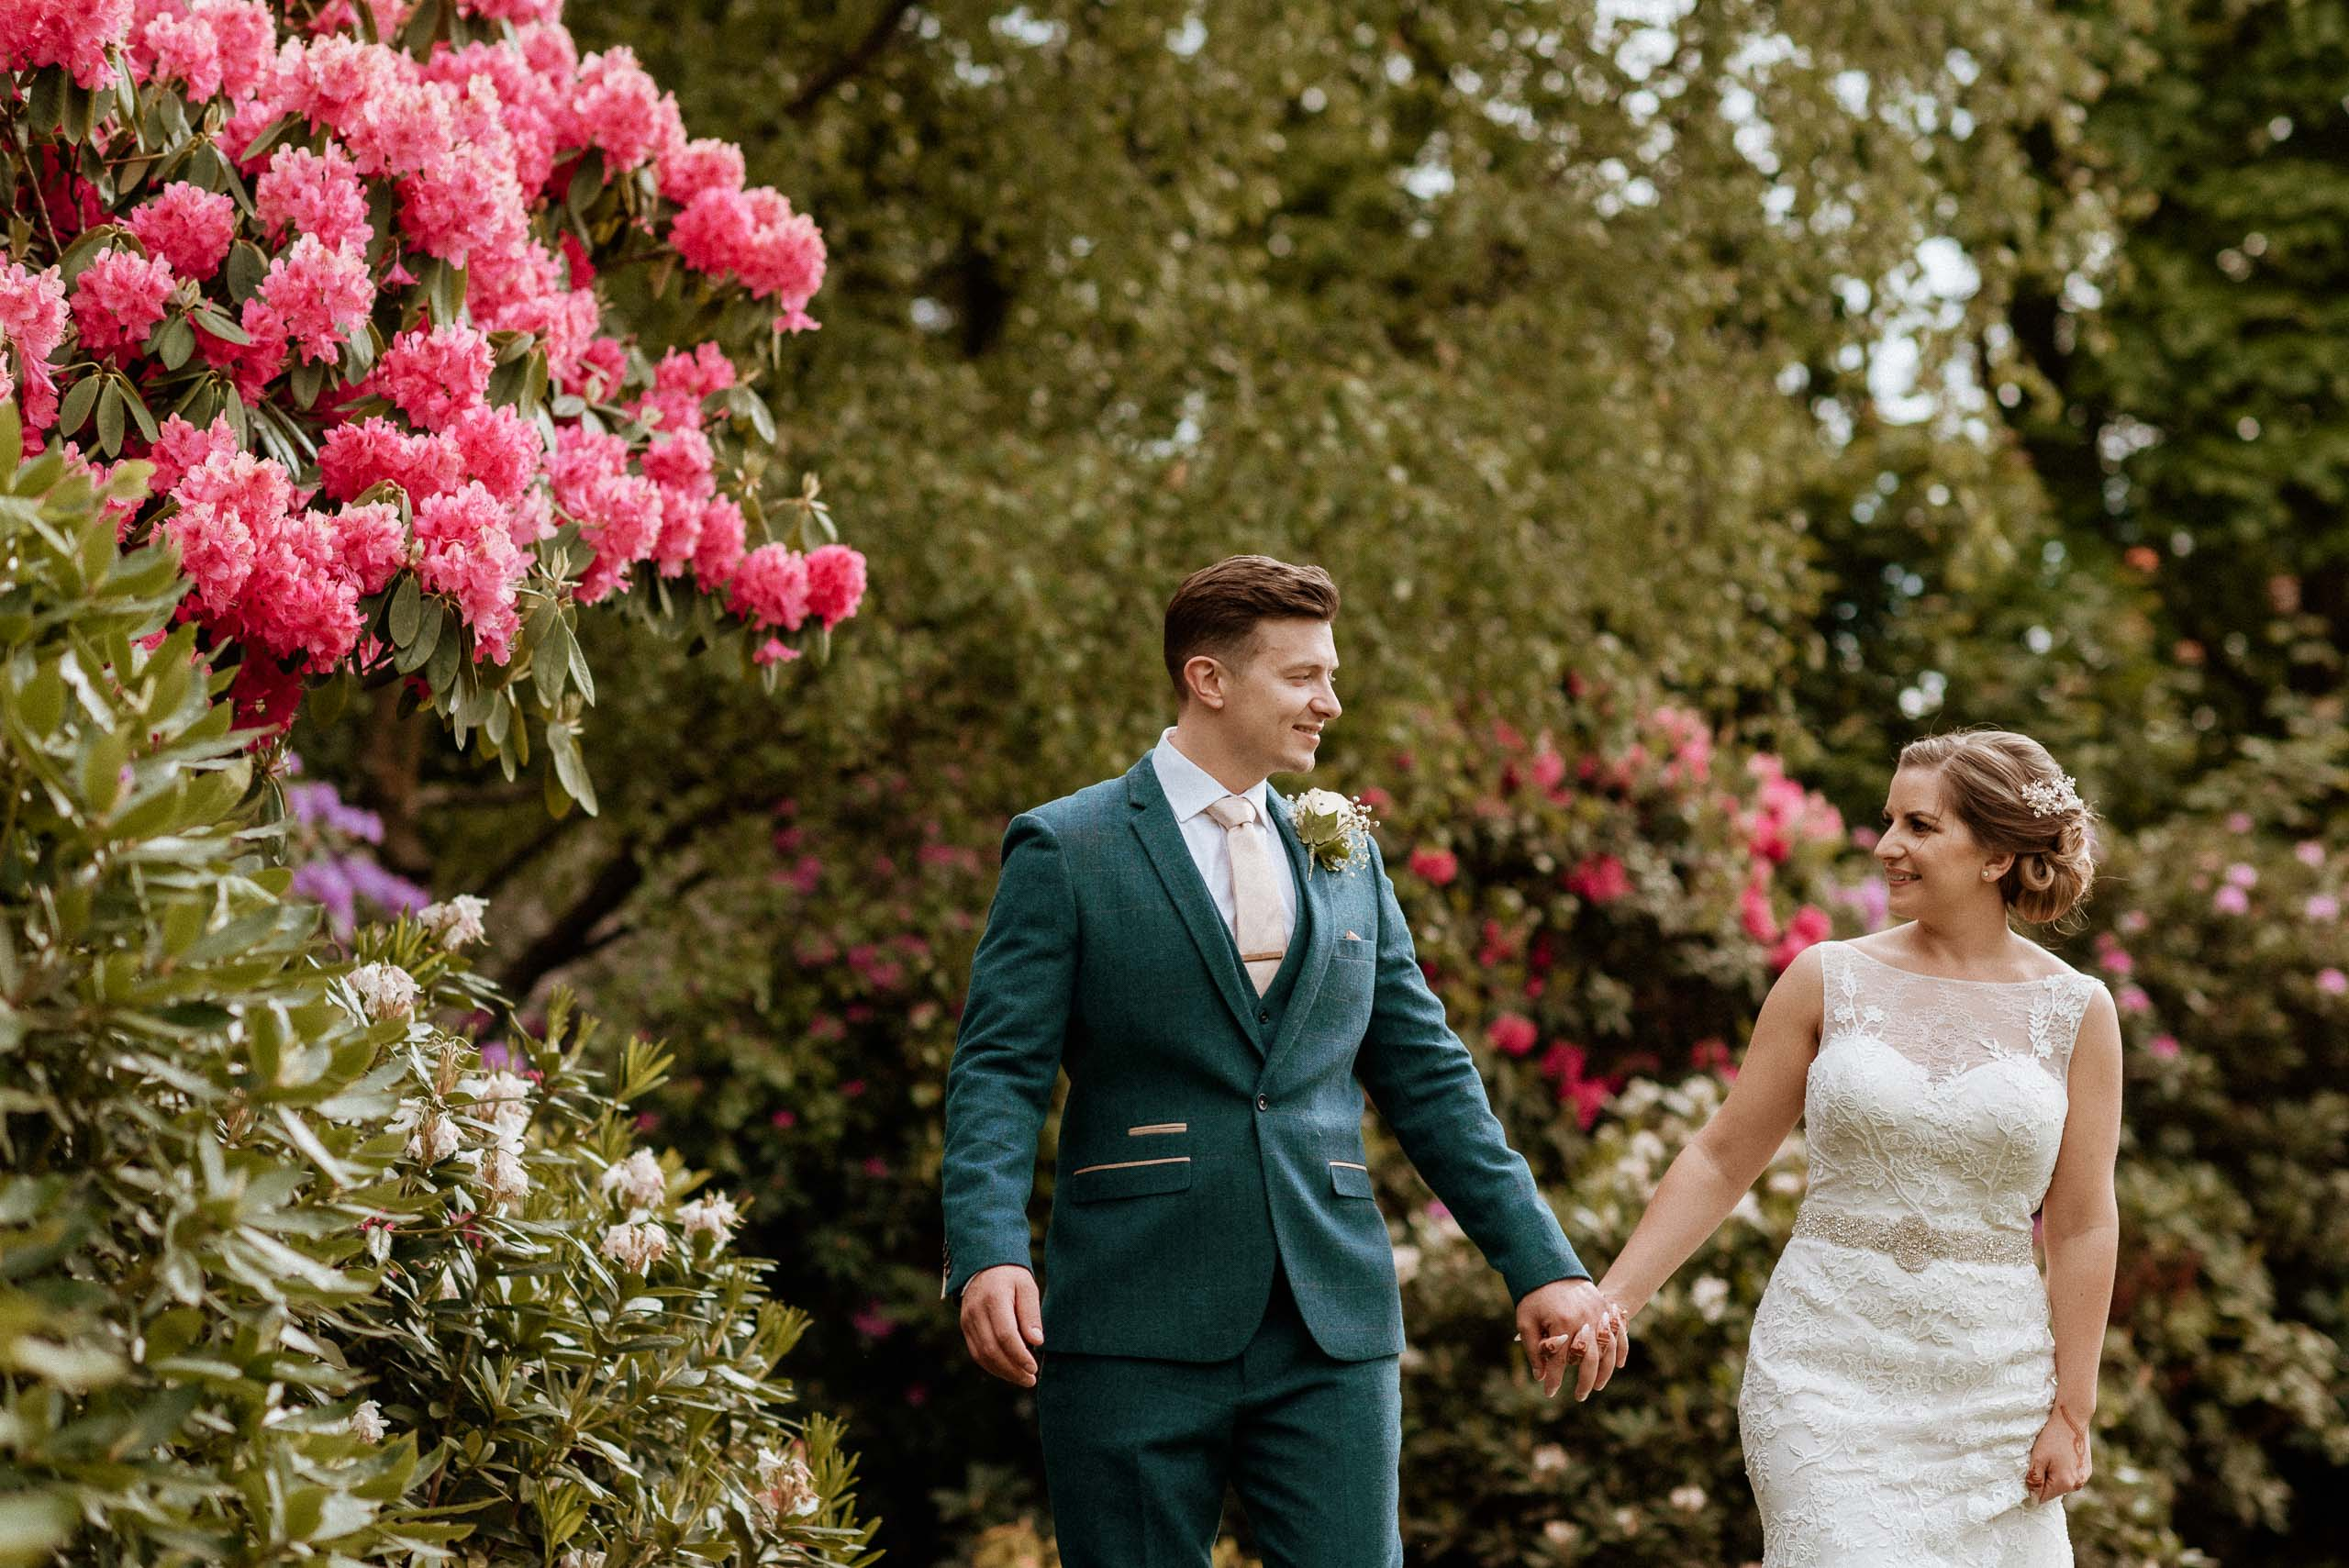 natural and relaxed bride and groom portrait